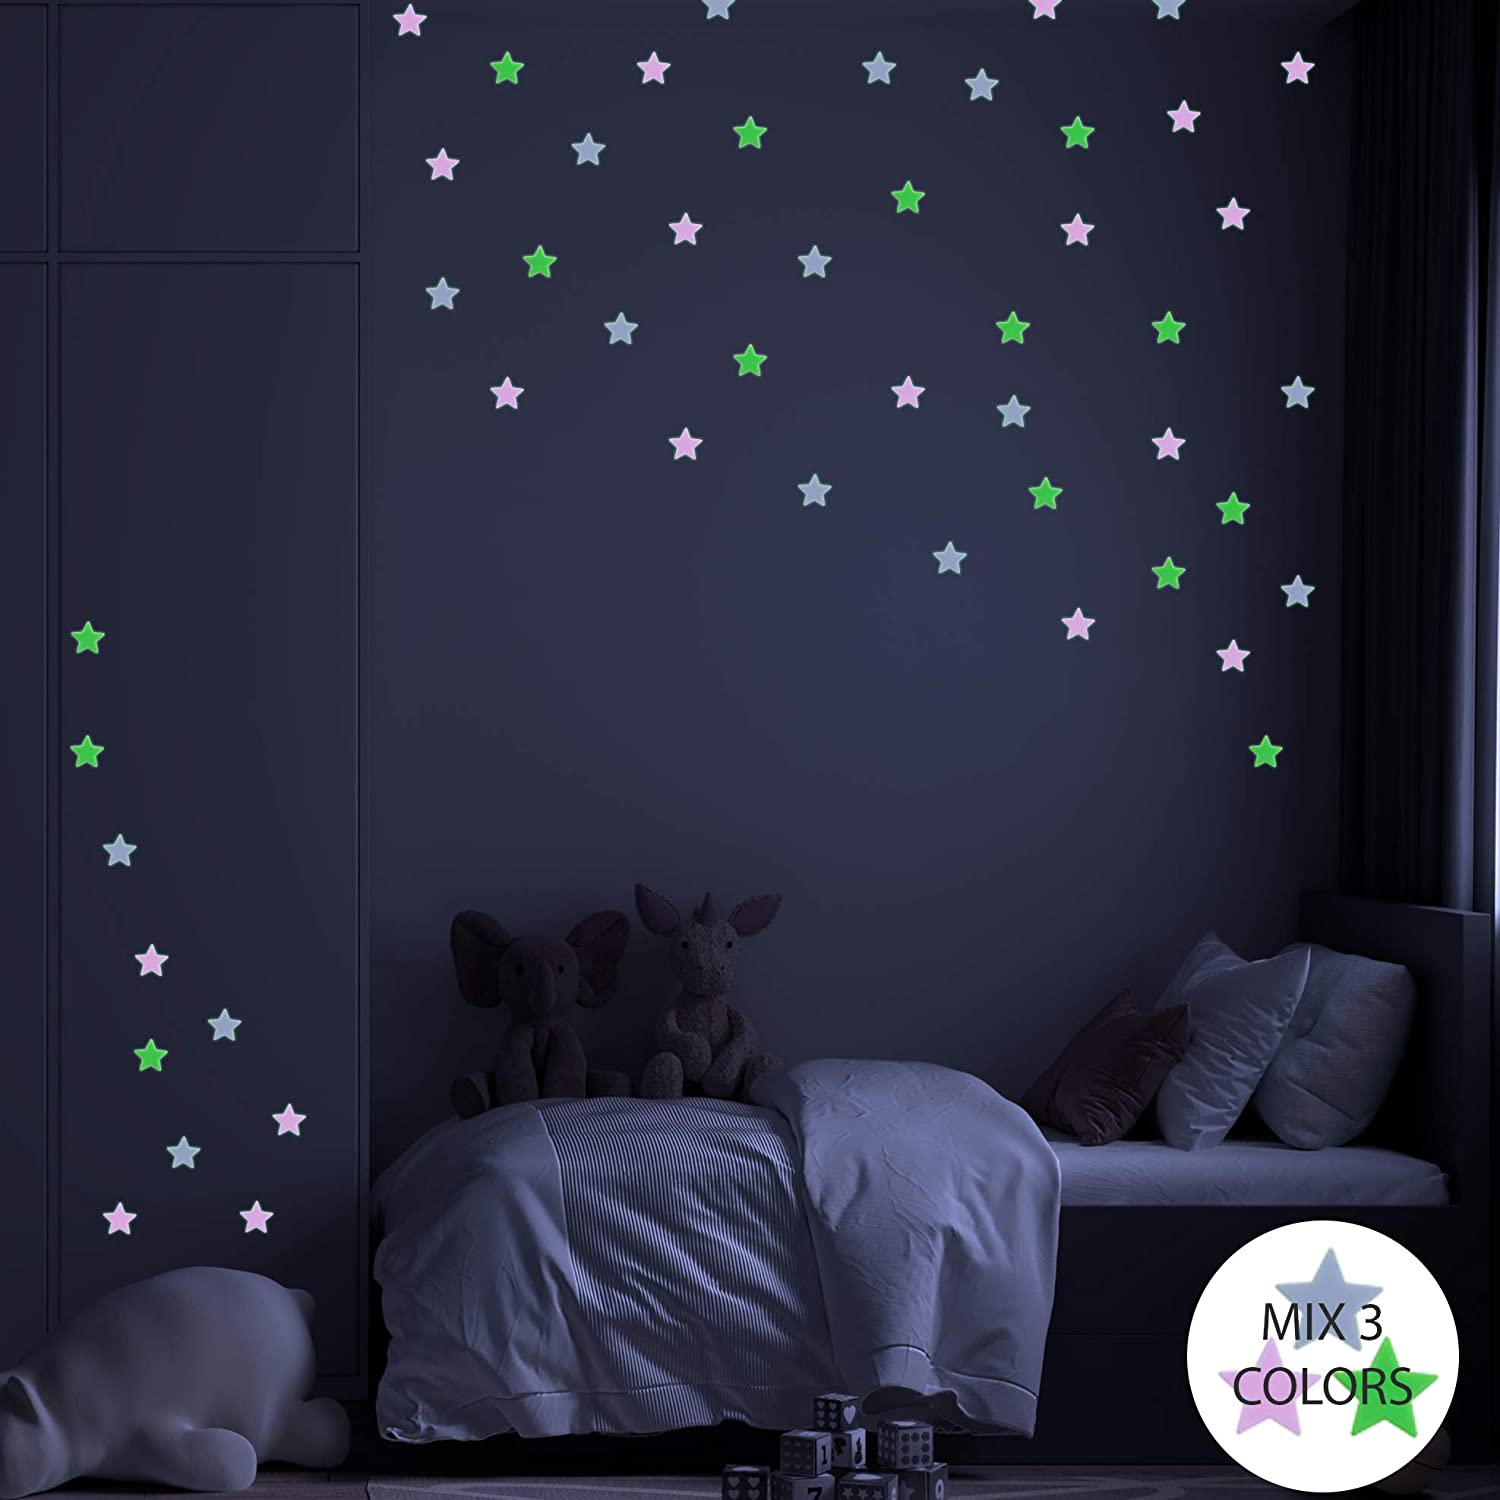 3cm Luminous Stars 3D Fluorescent Wall Stickers Home Decor Fluorescent Star Wall Stickers Vinyl Wall Decals Easy to Apply Children Bedroom Decorating Glow in The Dark